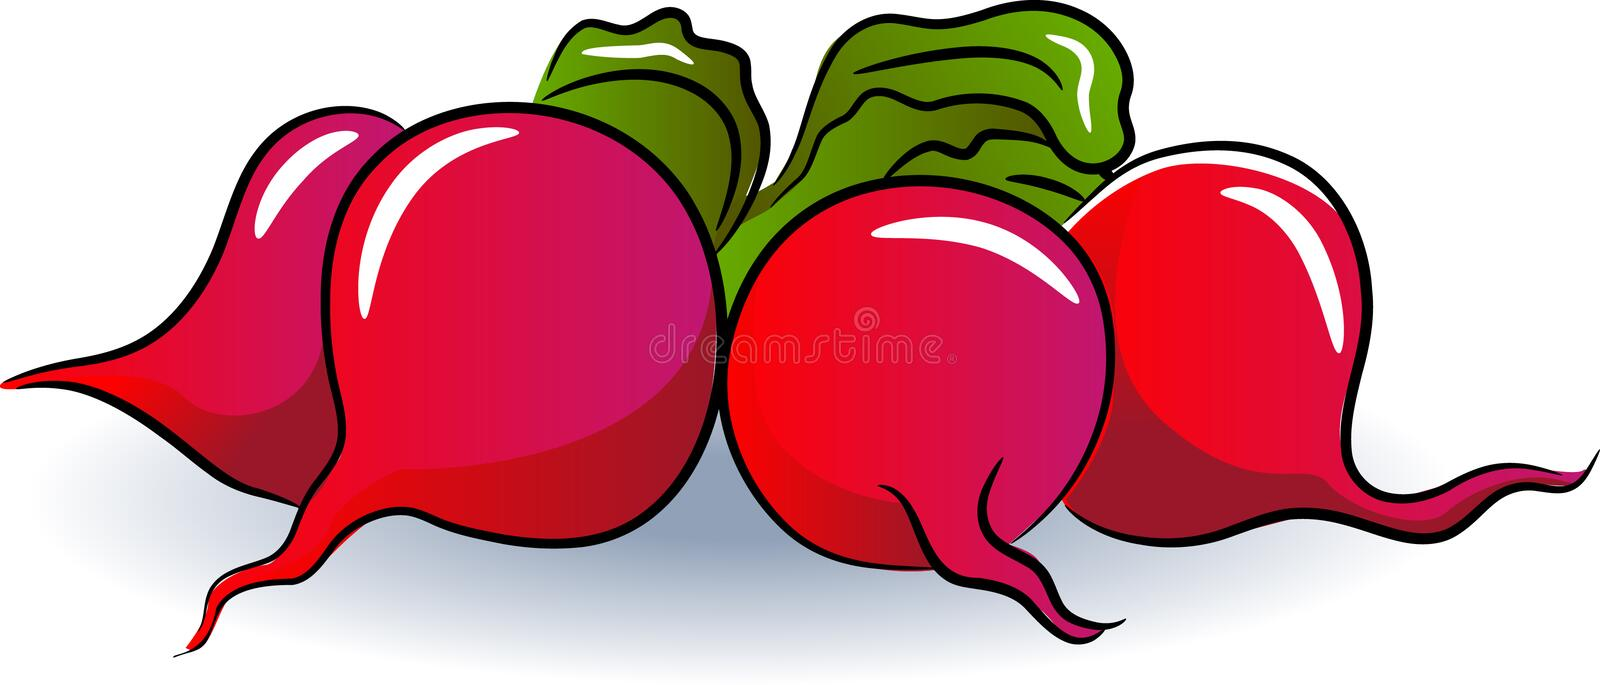 Beet. The beetroots clip art on white background royalty free illustration